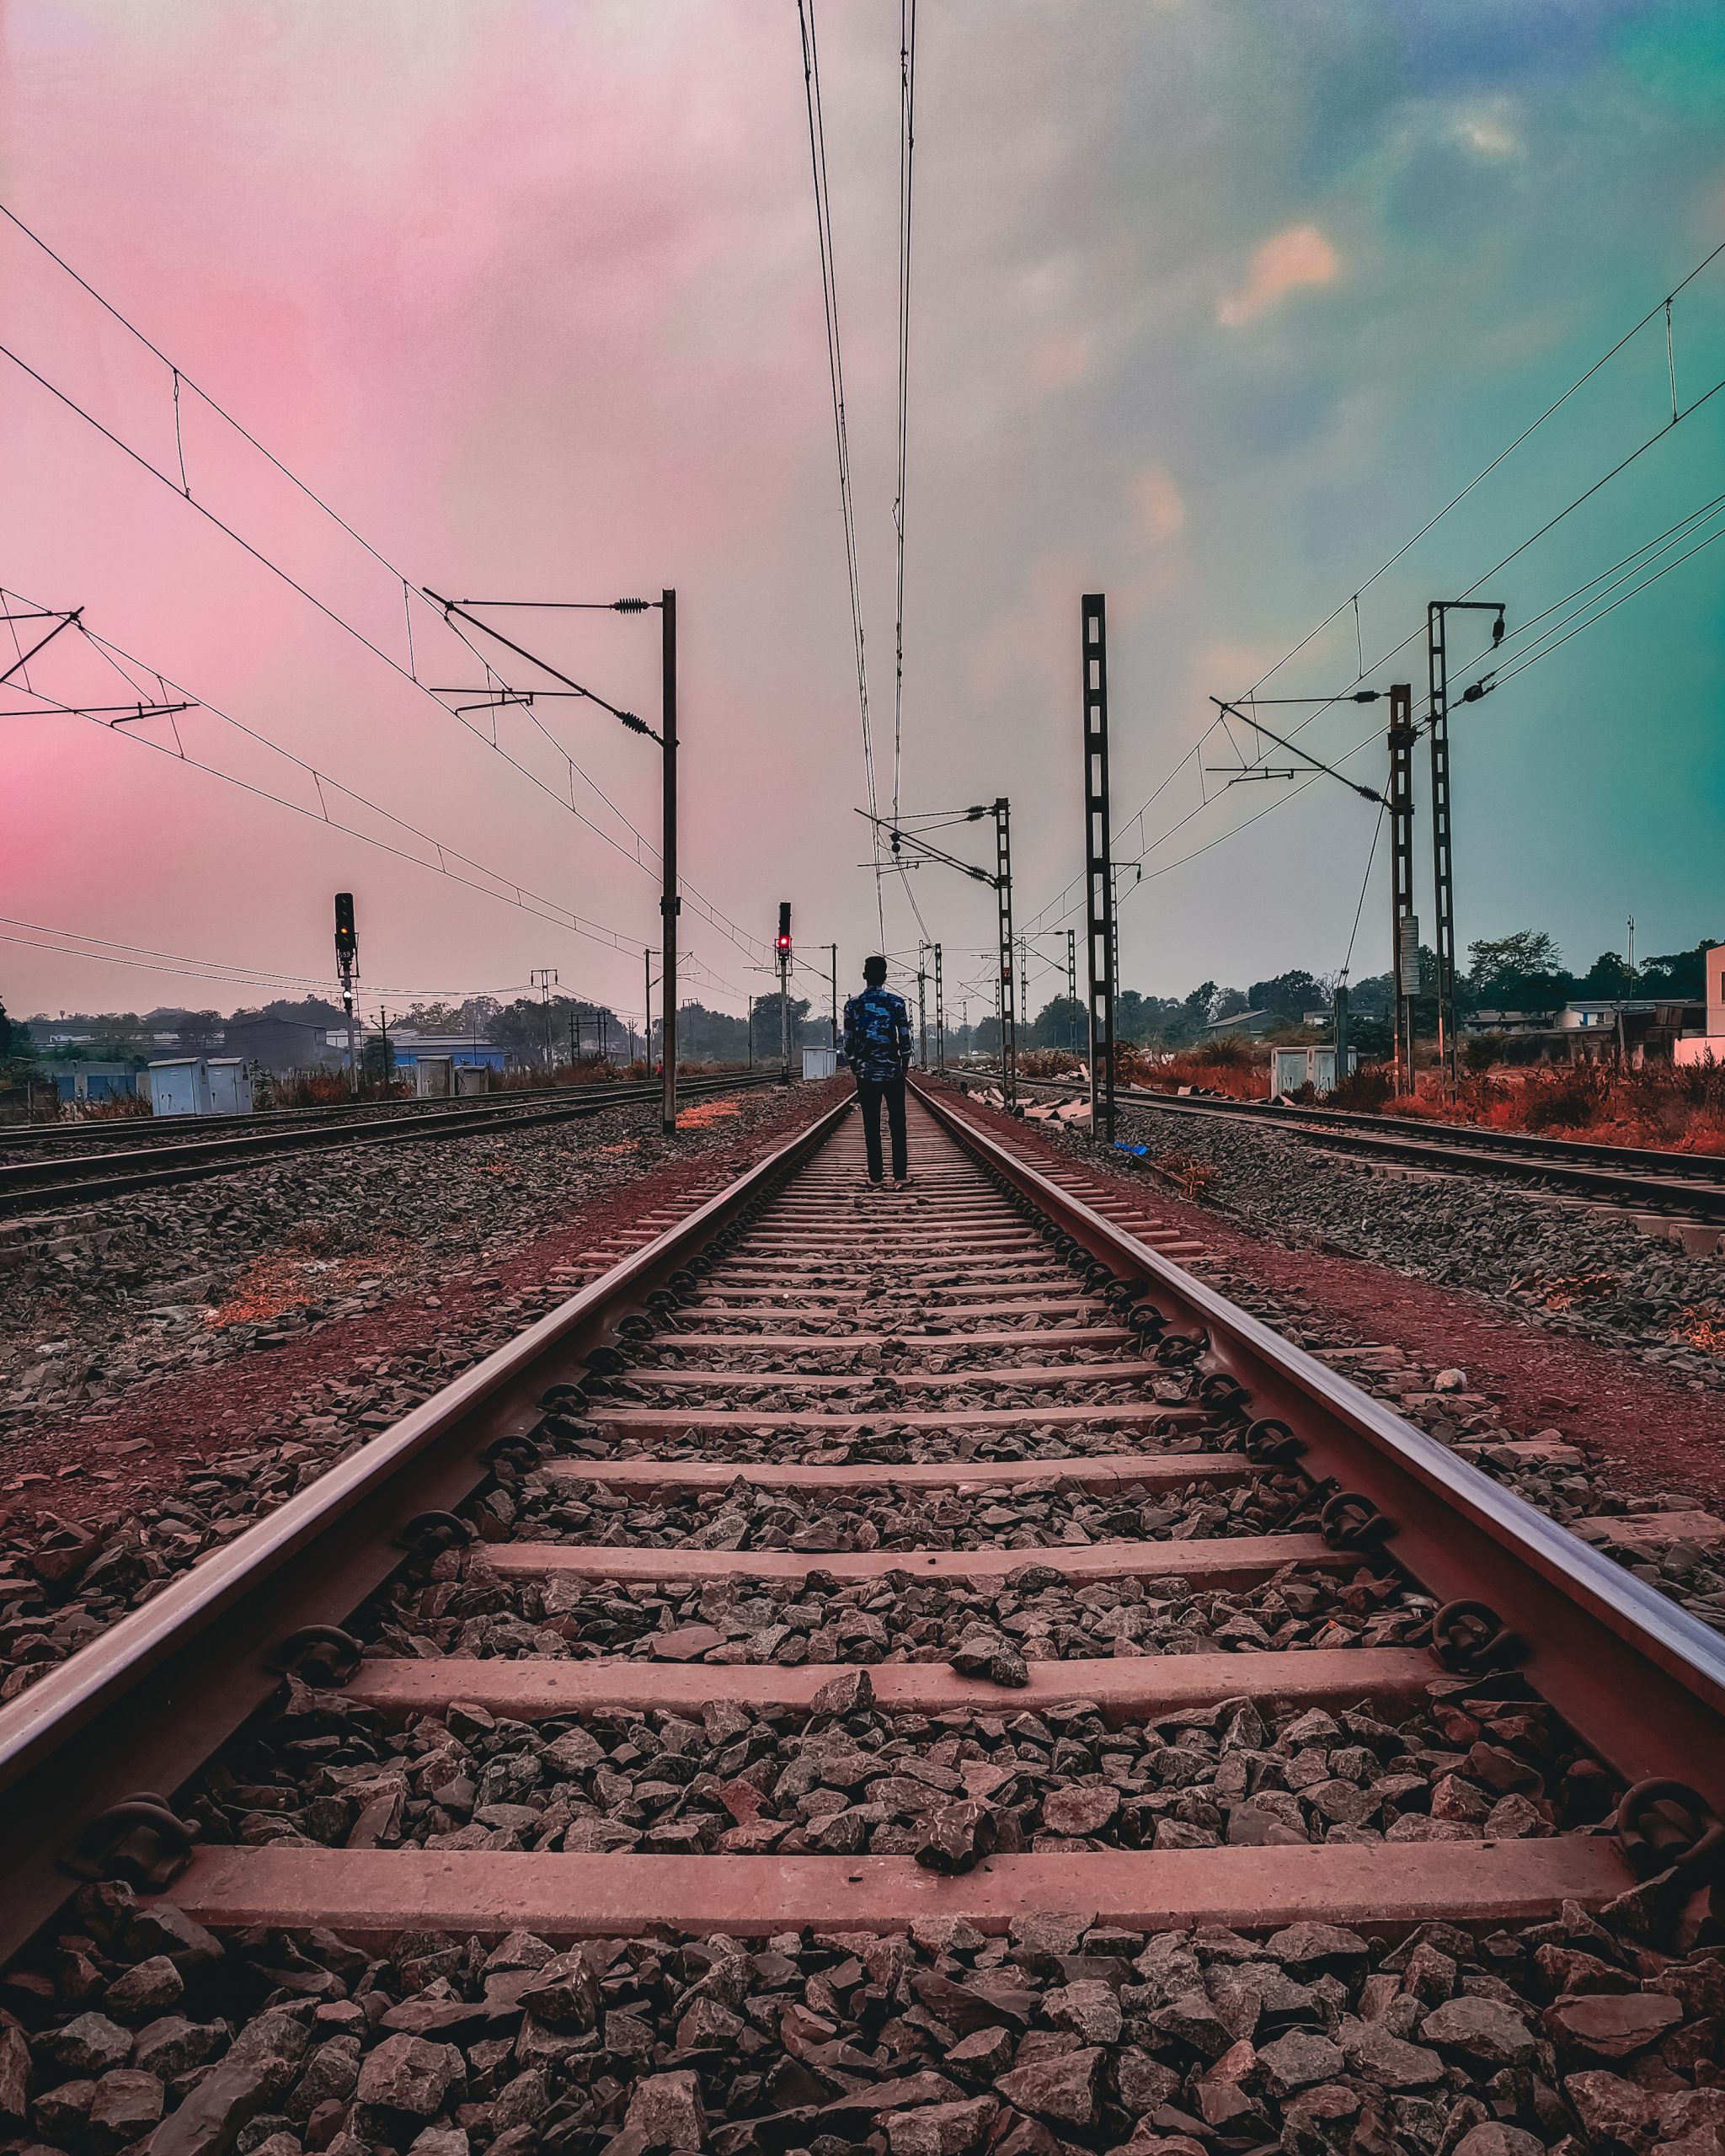 Man on railway track